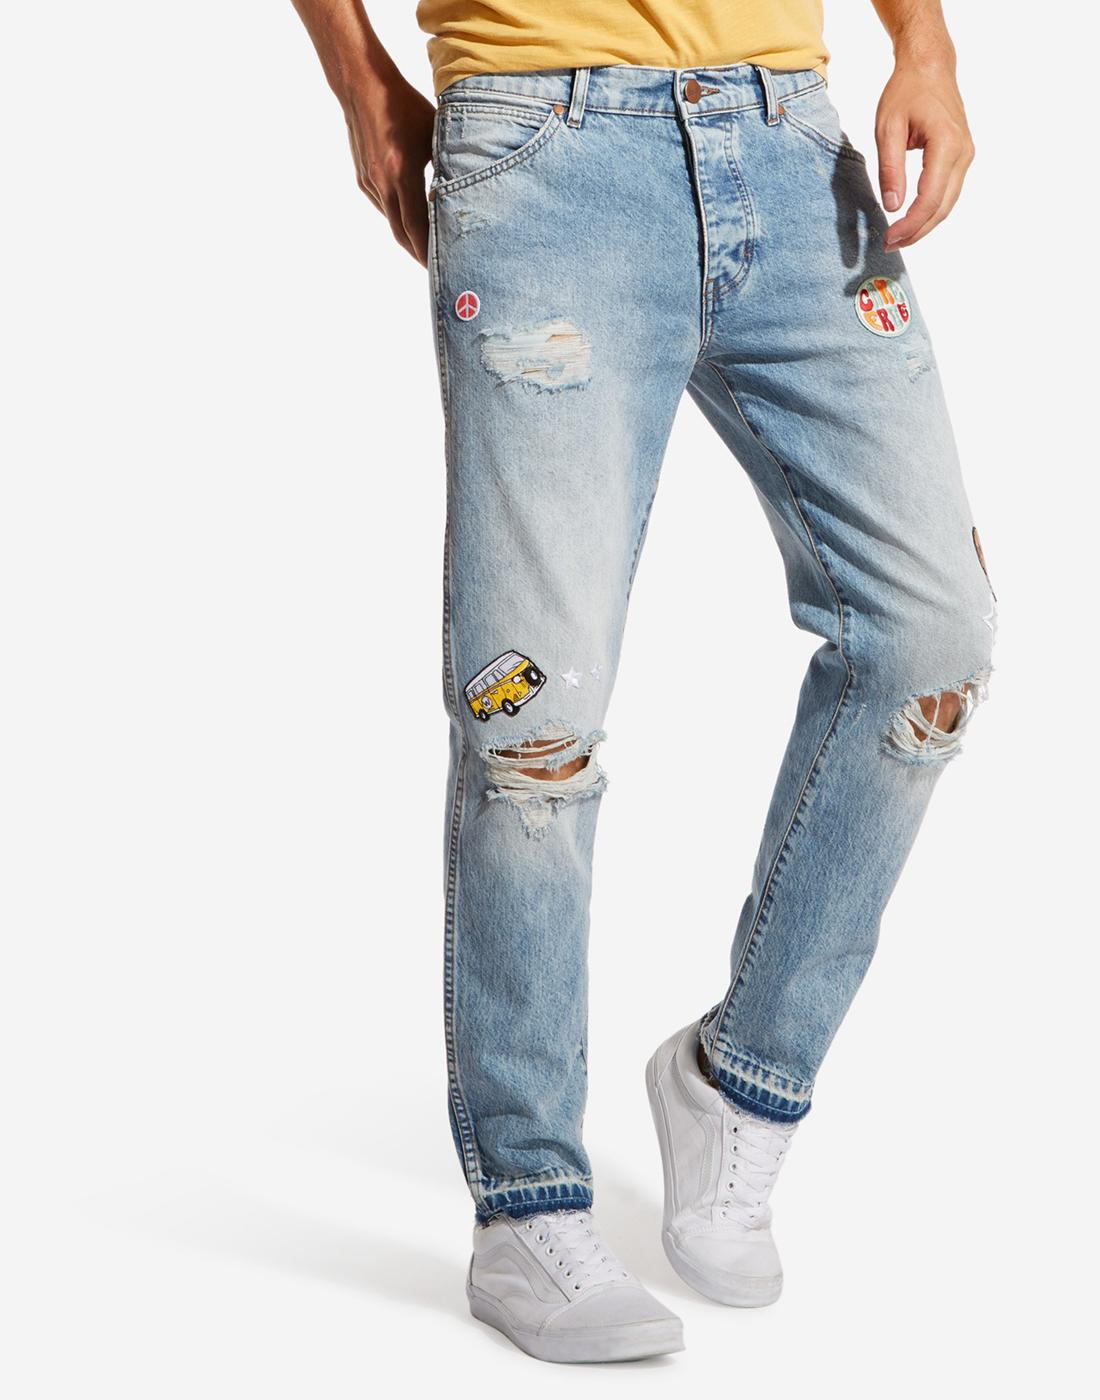 Boyton 70s WRANGLER Retro Patched & Ripped Jeans